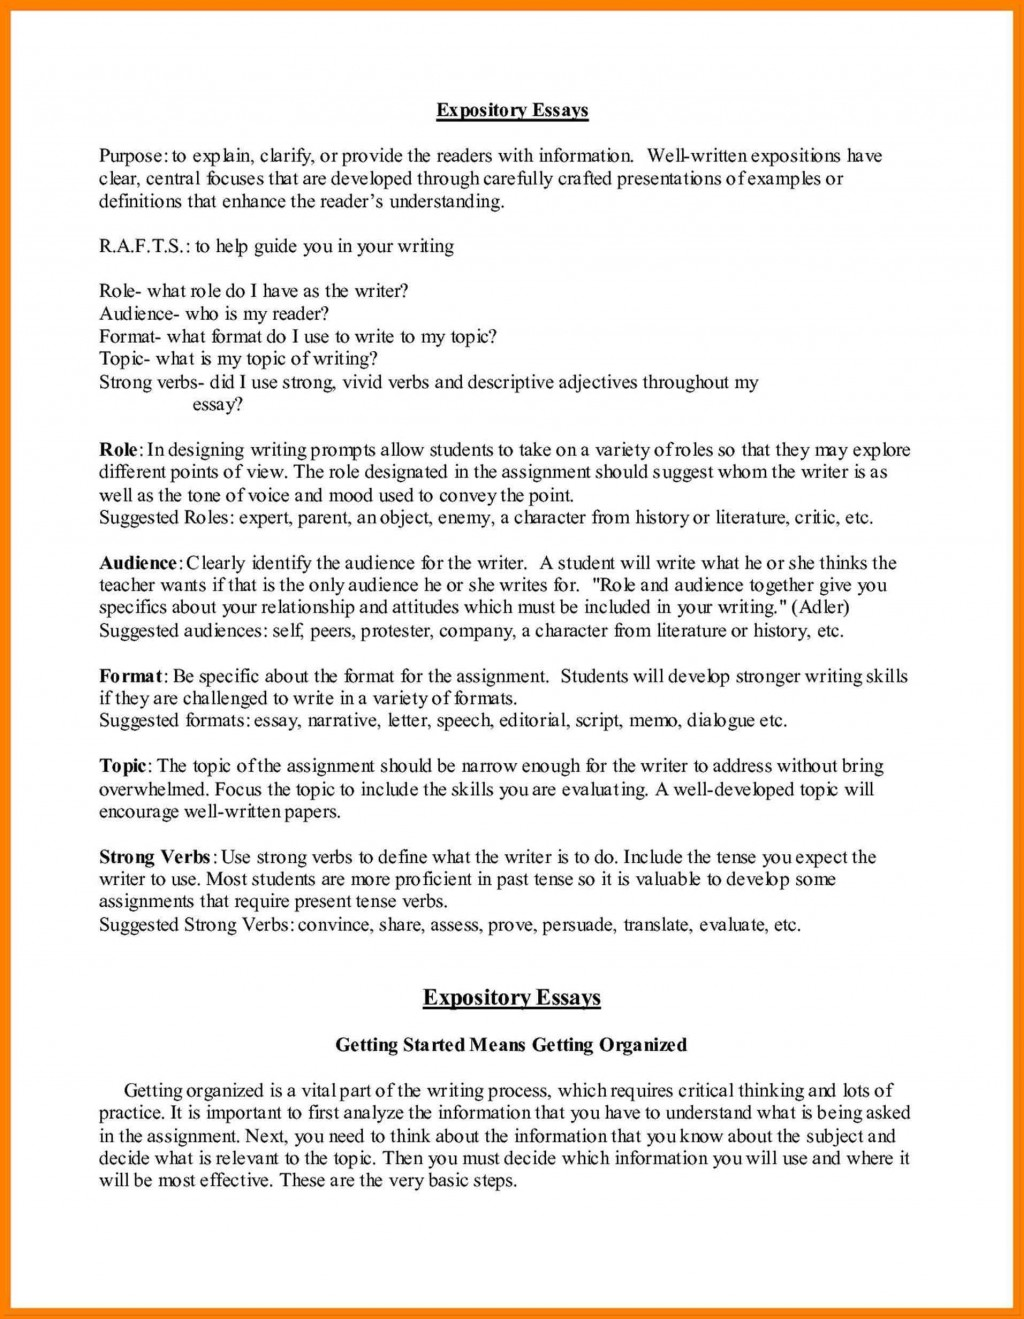 007 Editorial Essaymples For High School Highschool Students With Expected Salarymple Sample Sat Prompts Essays Need Help My What To Say In Email Imposing Essay Examples Short About Travel Large